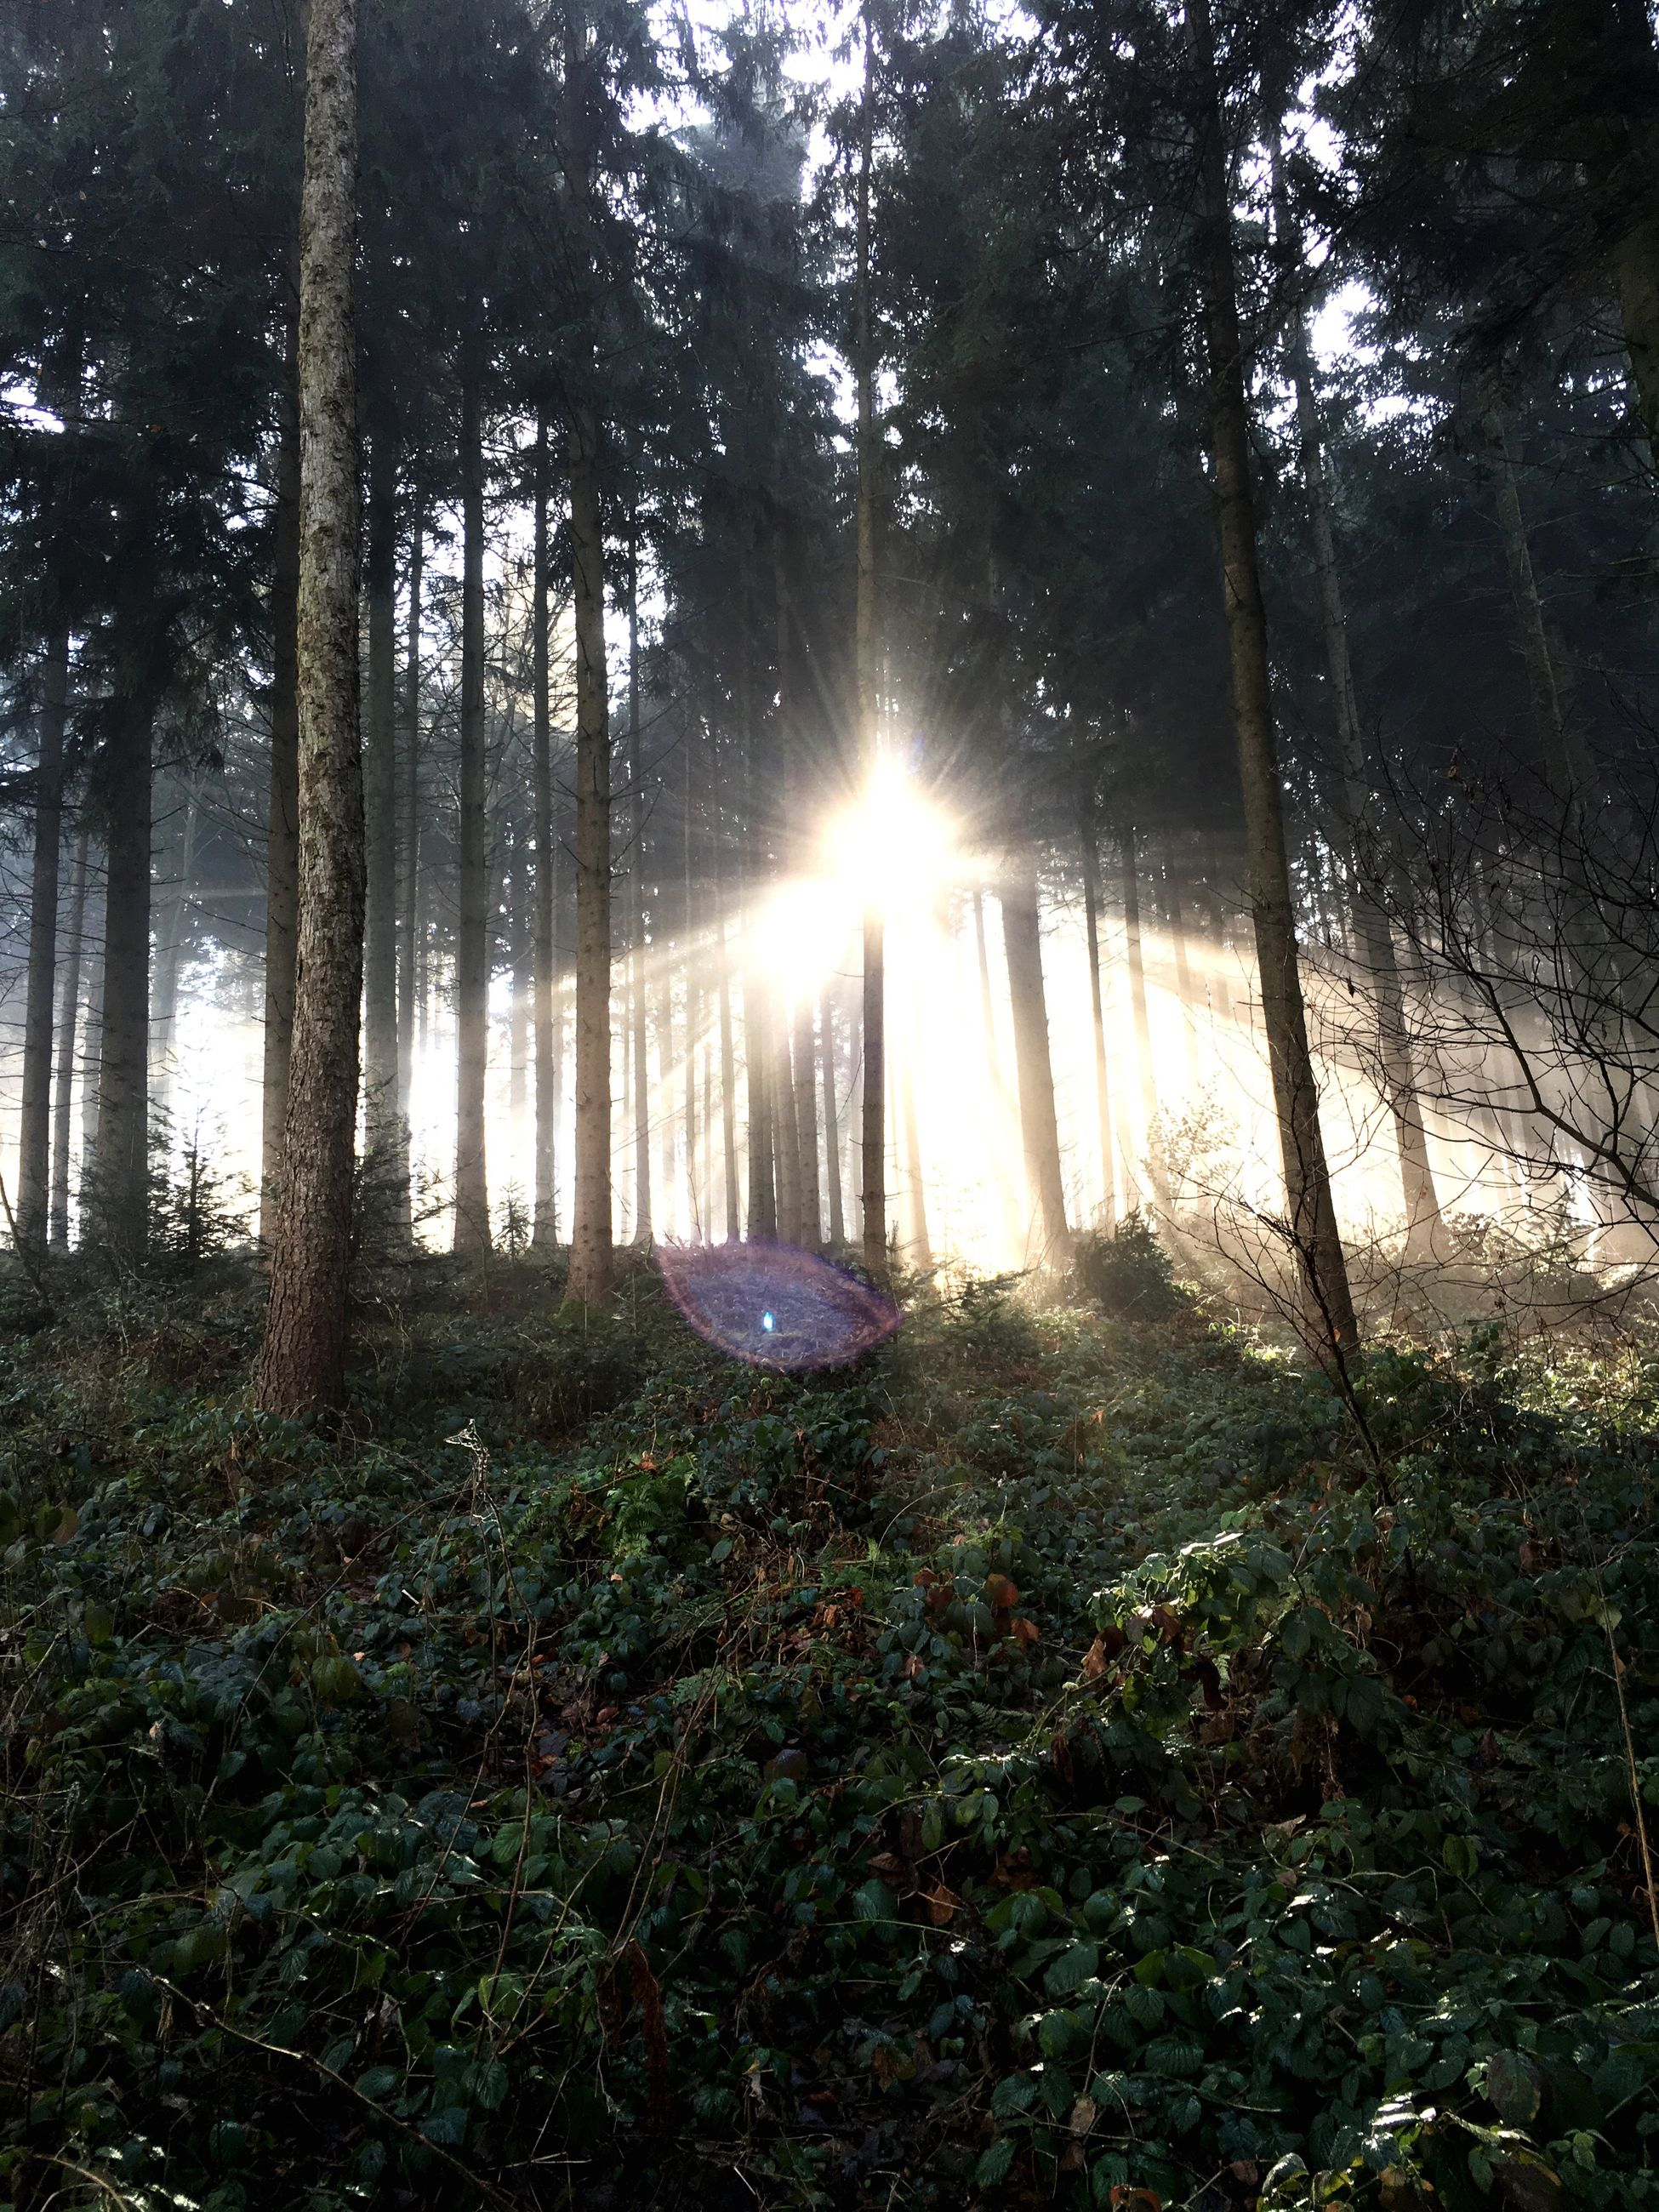 tree, forest, sun, tranquility, tranquil scene, sunlight, sunbeam, nature, woodland, beauty in nature, scenics, lens flare, growth, tree trunk, non-urban scene, landscape, back lit, idyllic, no people, outdoors